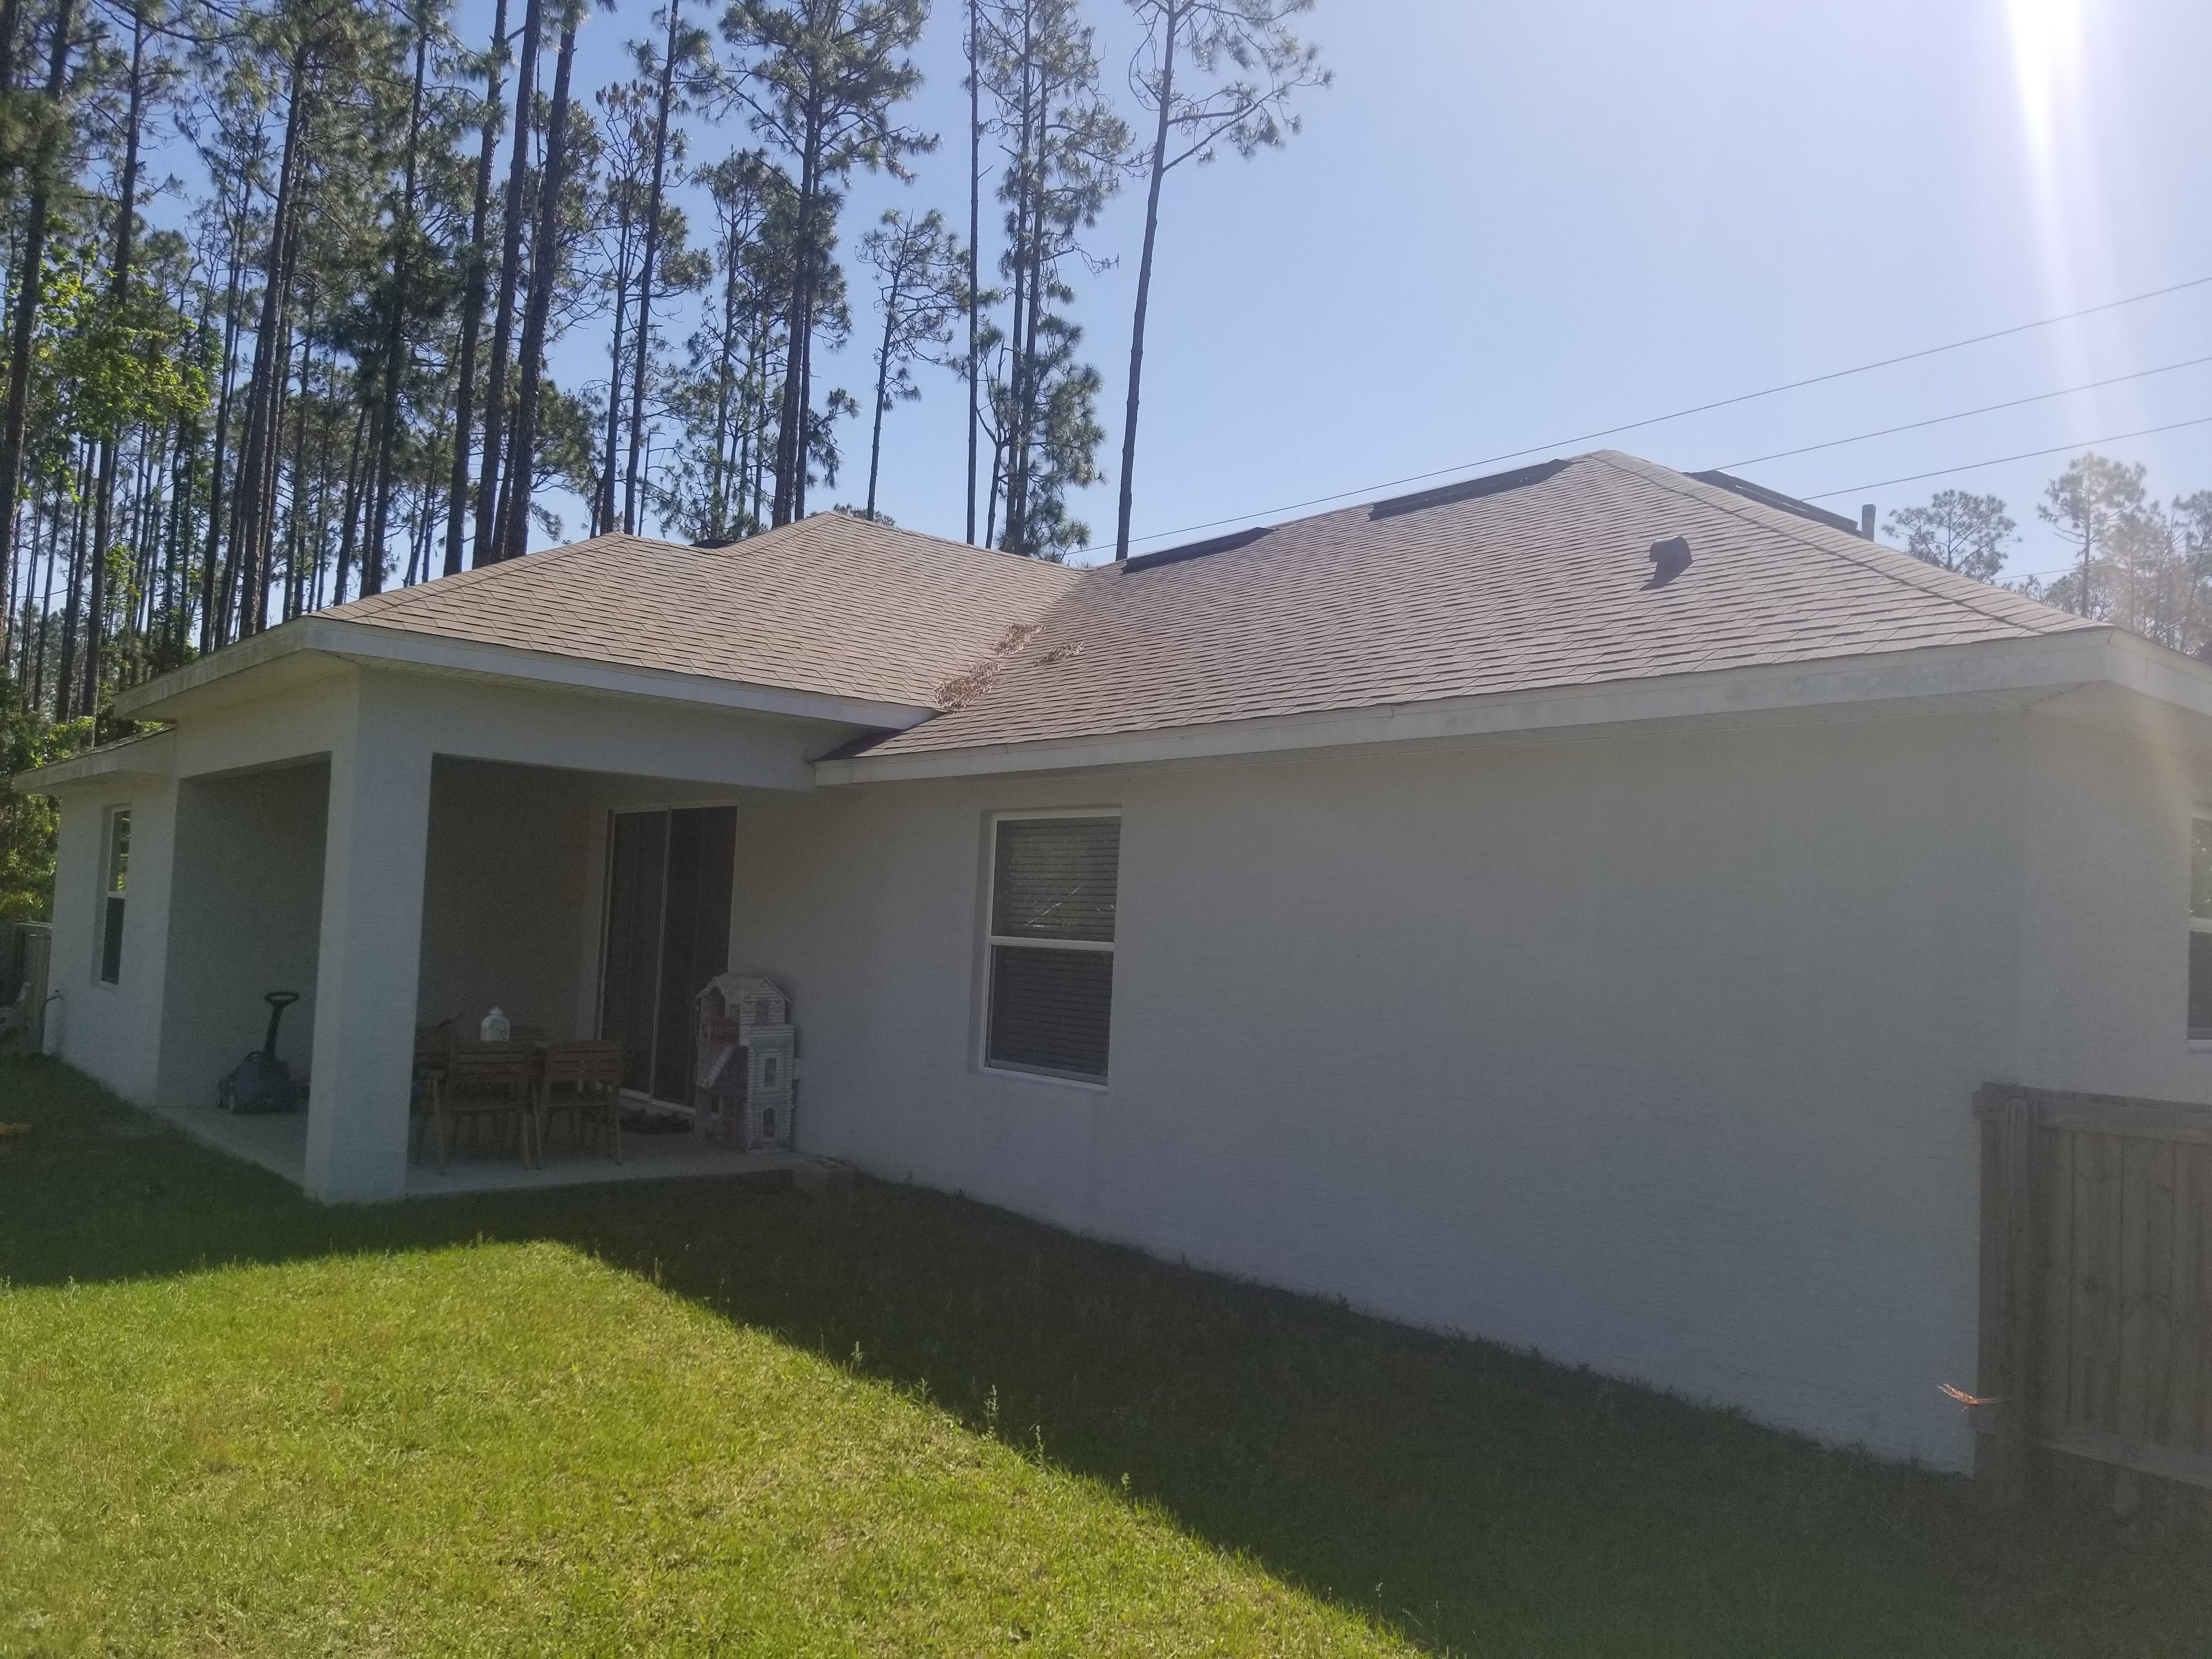 Palm Coast Gutter And Downspout Install Gsd Construction